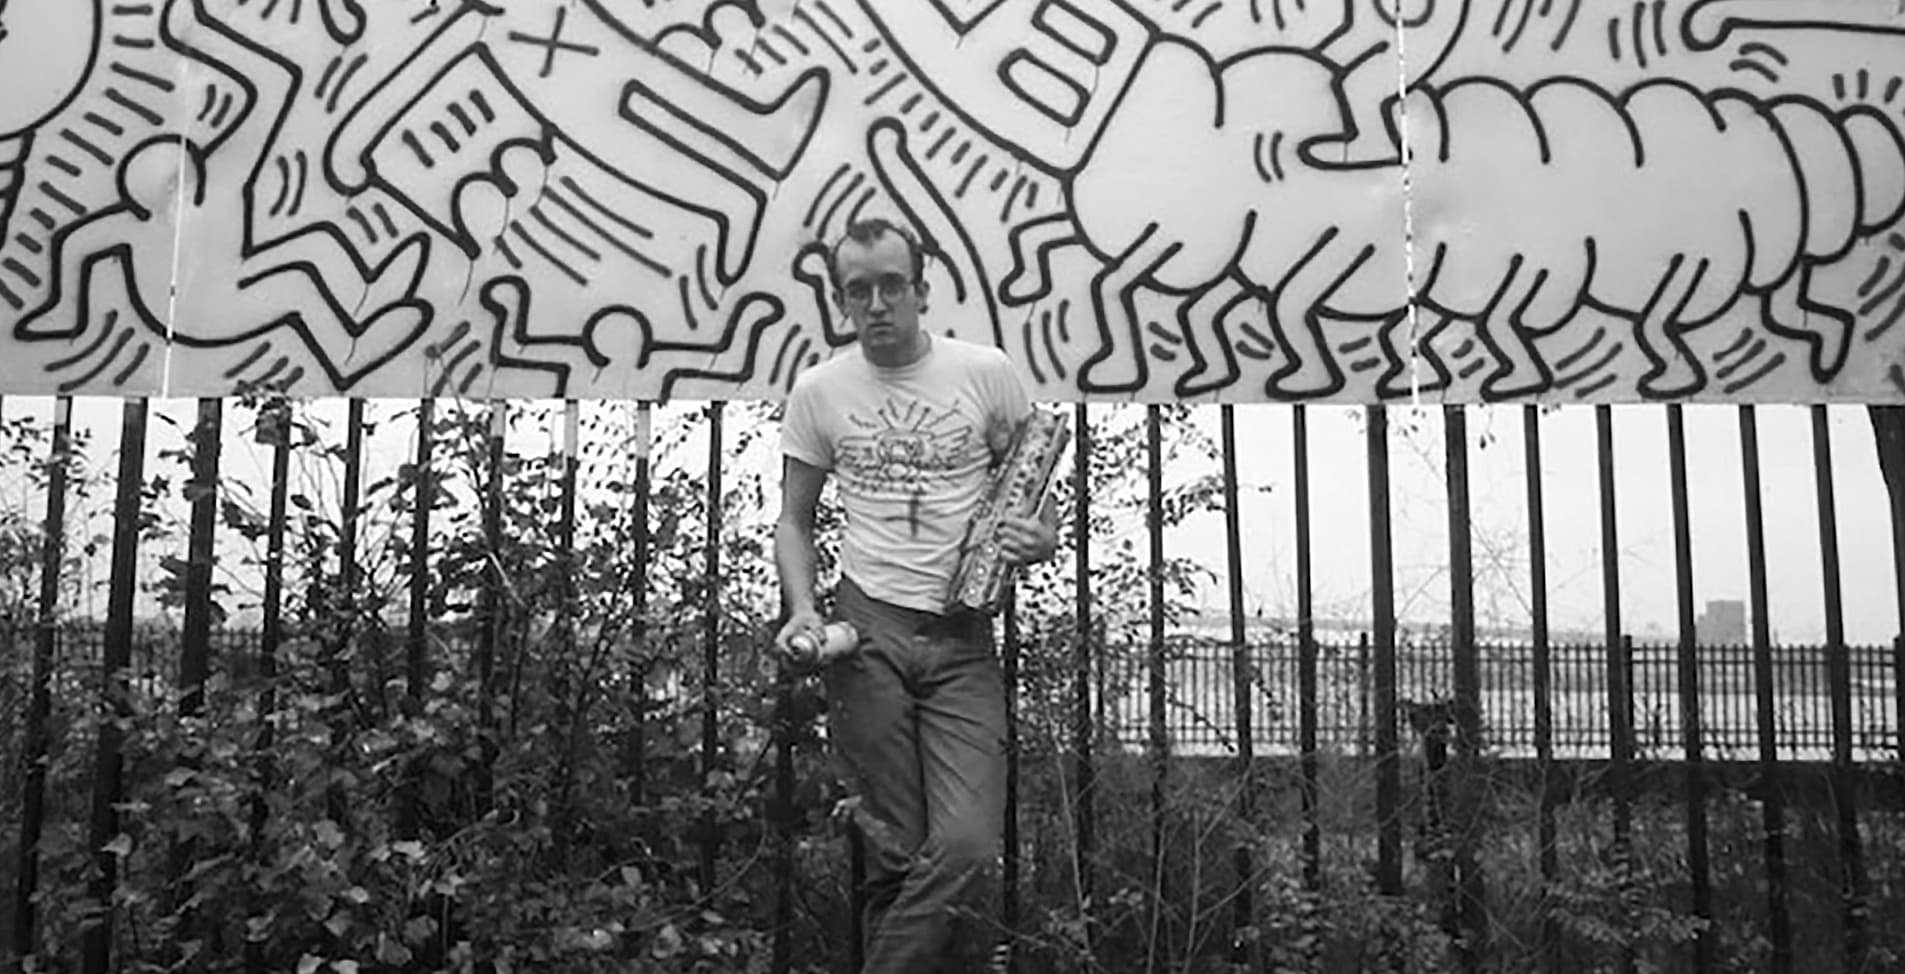 """""""Untitled FDR NY #23 and #24"""", 1984 - Keith Haring at WNDR Museum Chicago"""